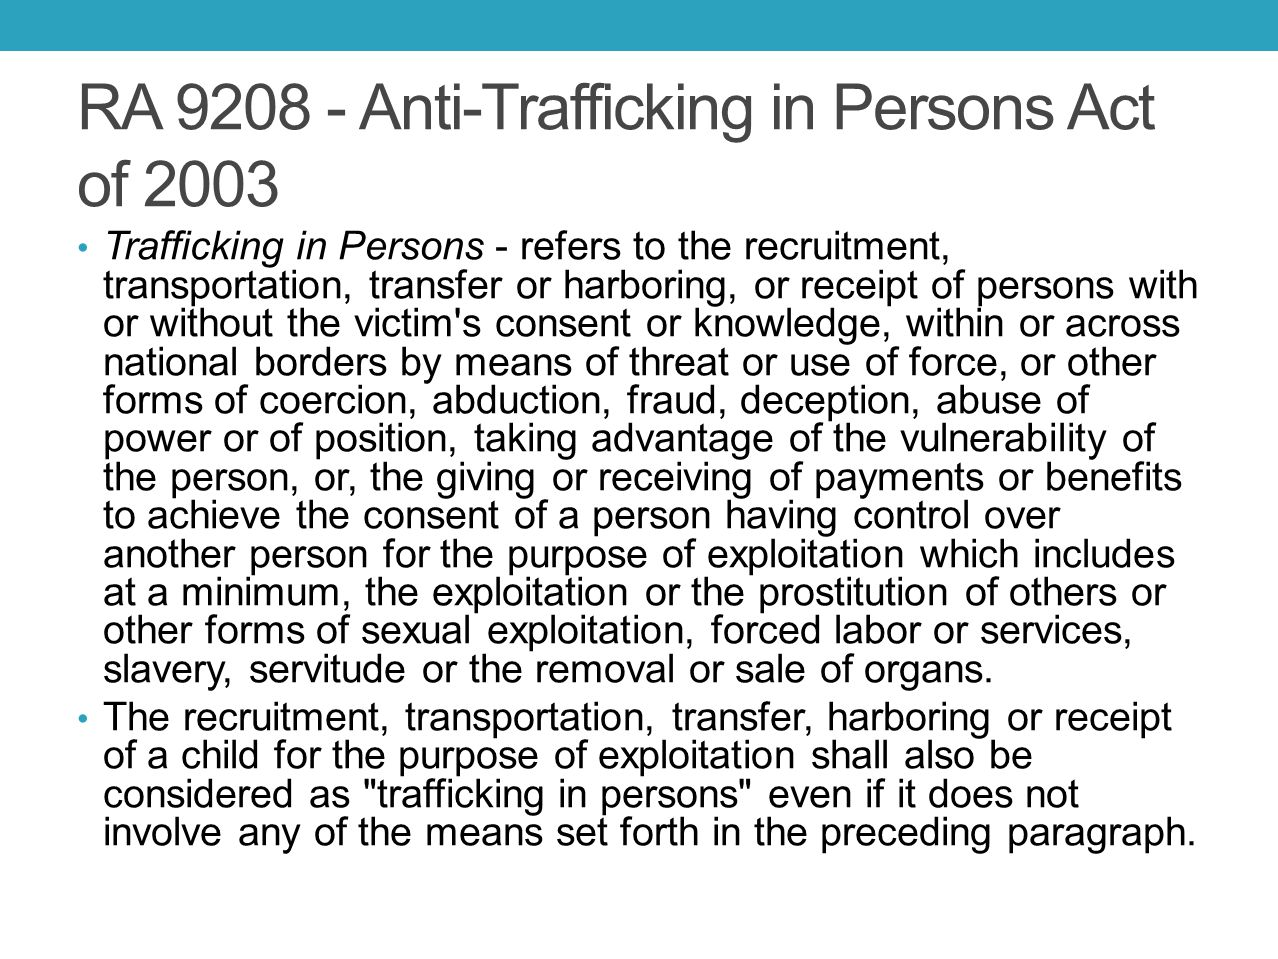 RA 9208 - Anti-Trafficking in Persons Act of 2003